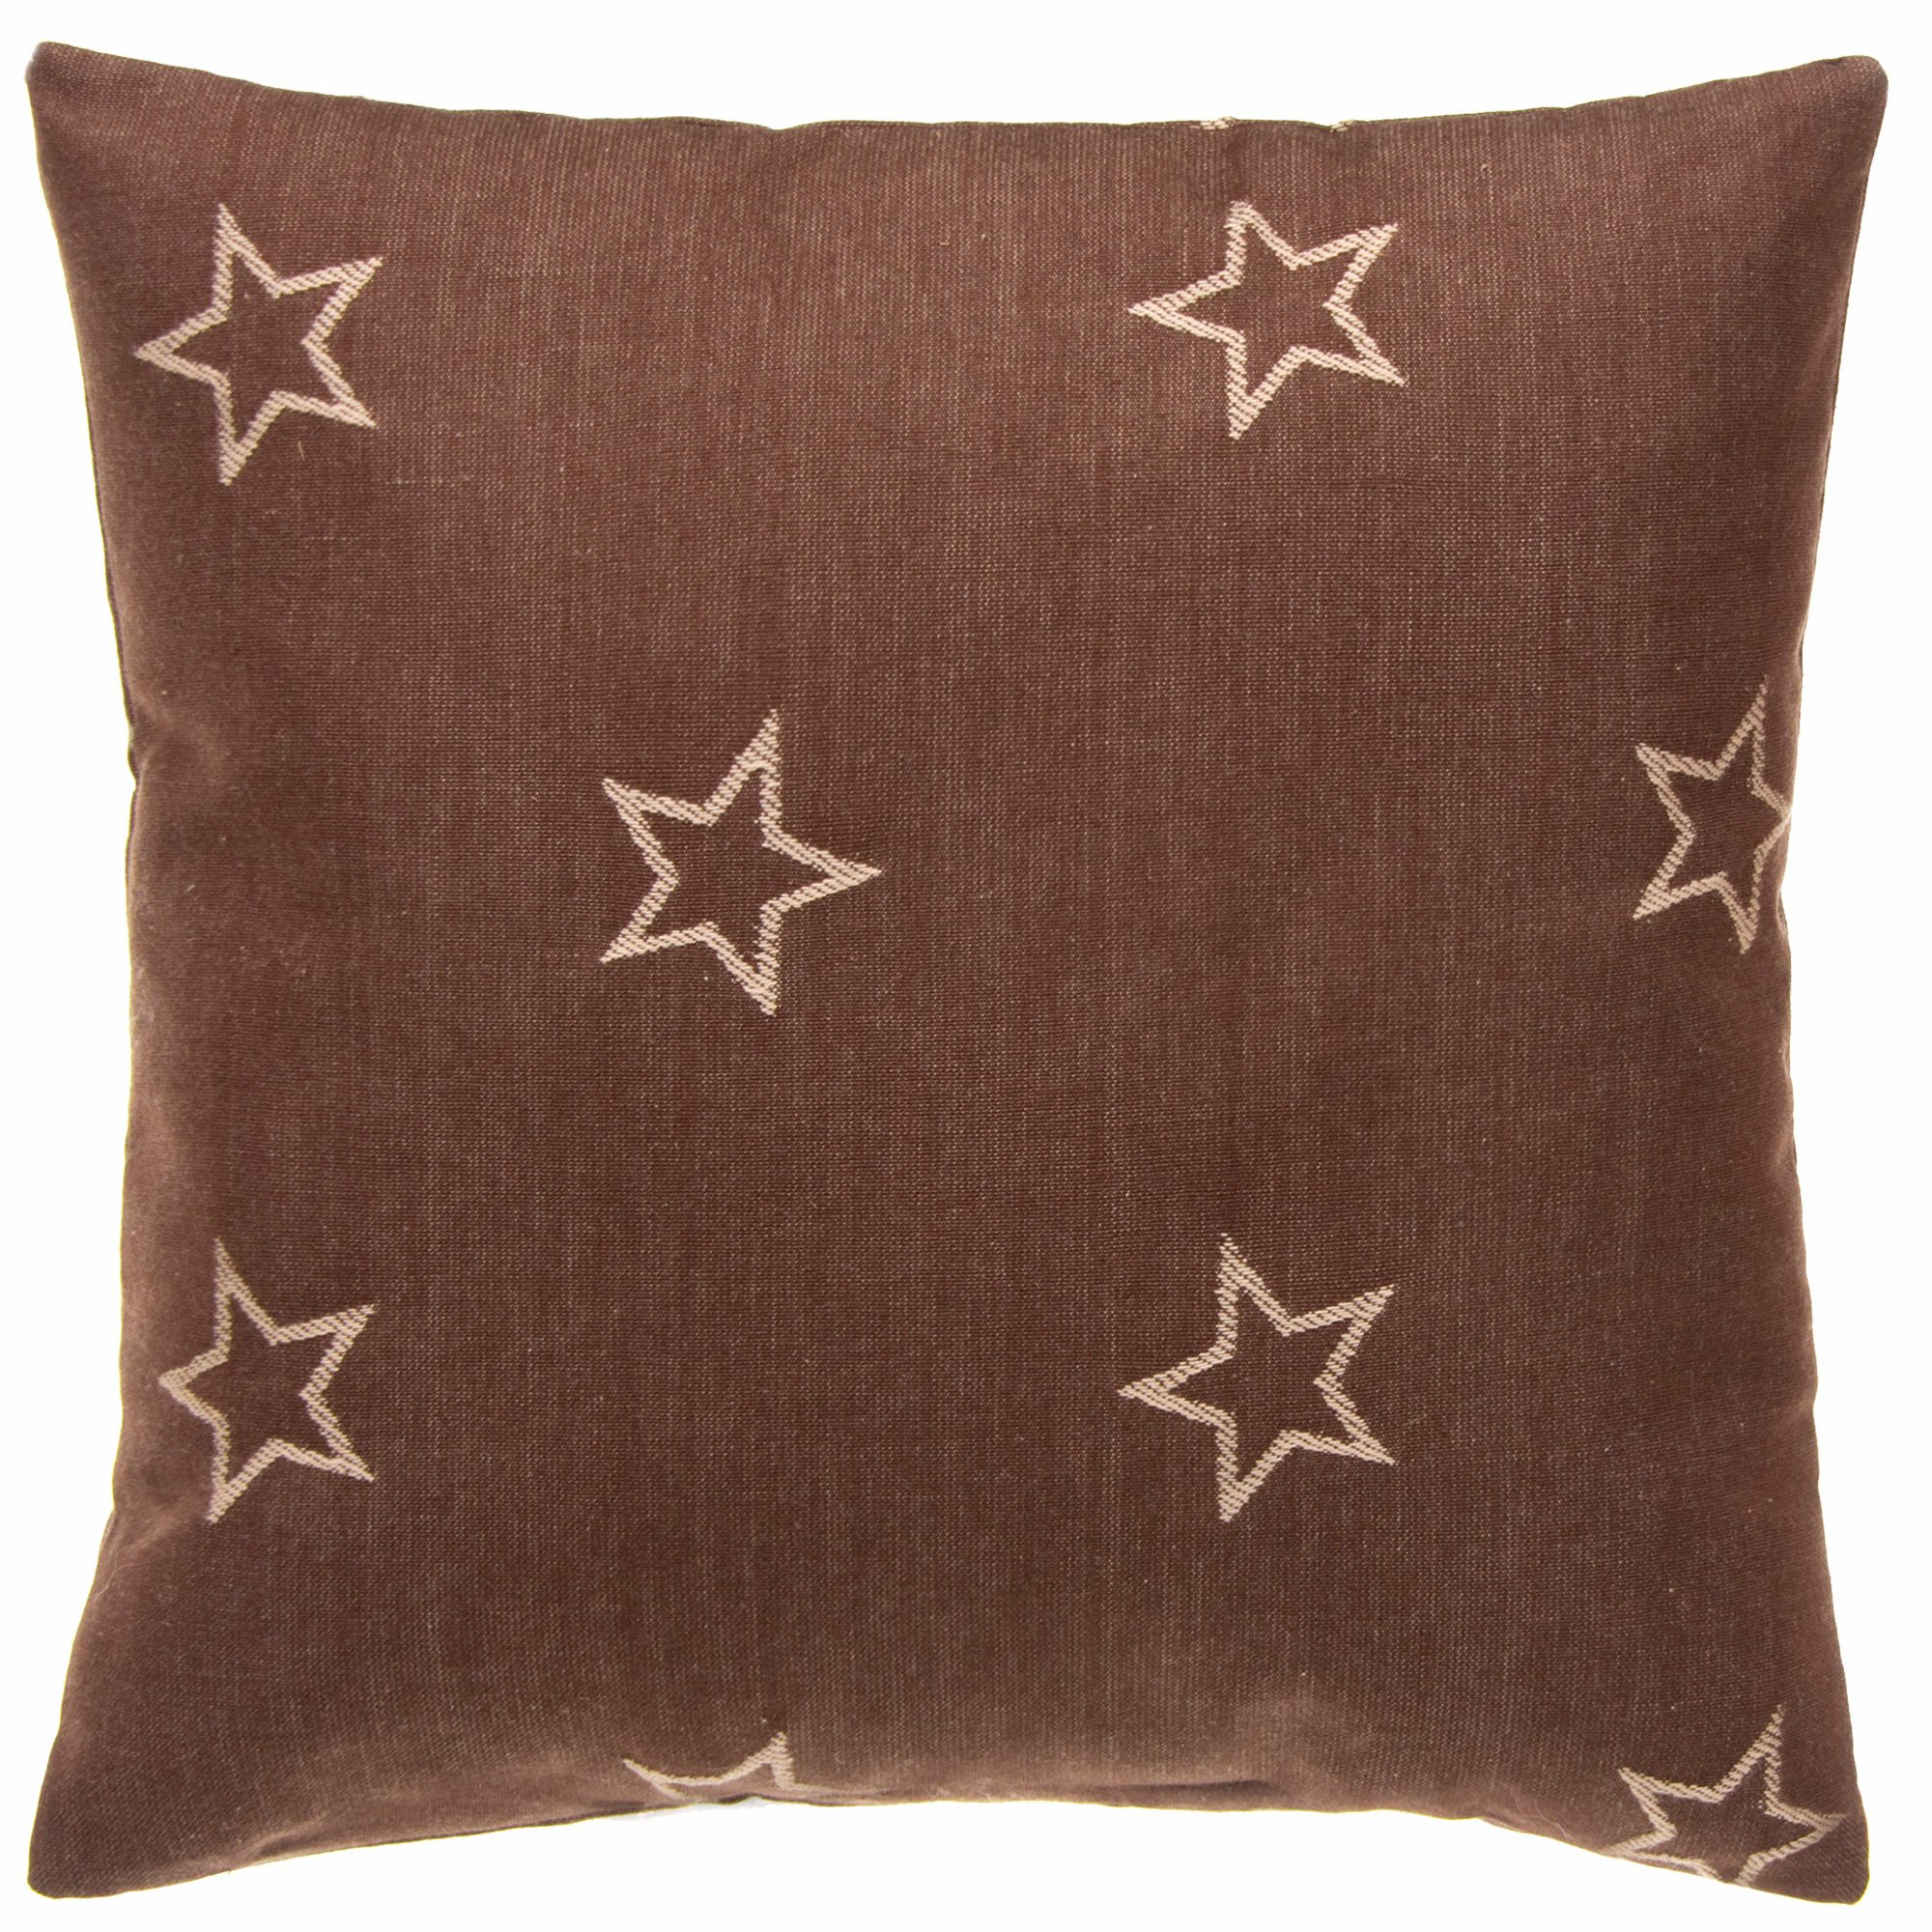 Camp River Rock Brown With Stars Throw Pillow by Glenna Jean